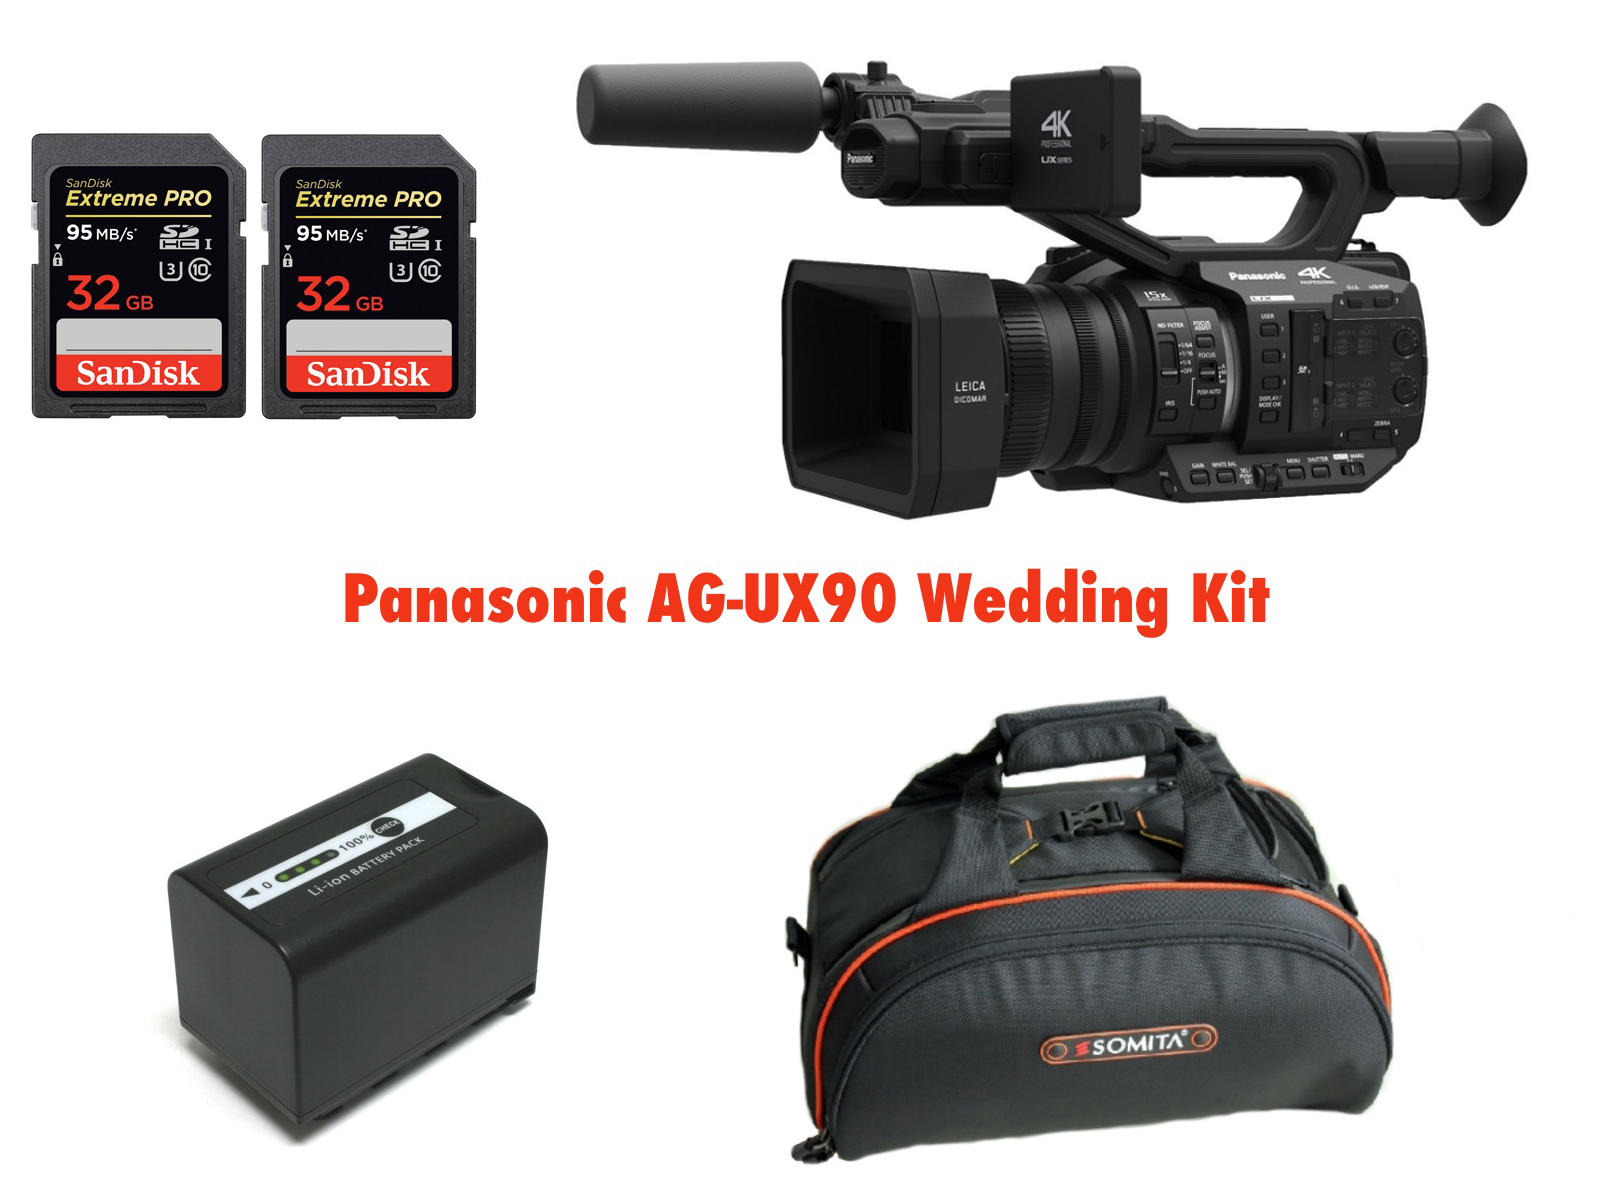 PANASONIC AG-UX90 WEDDING KIT 1